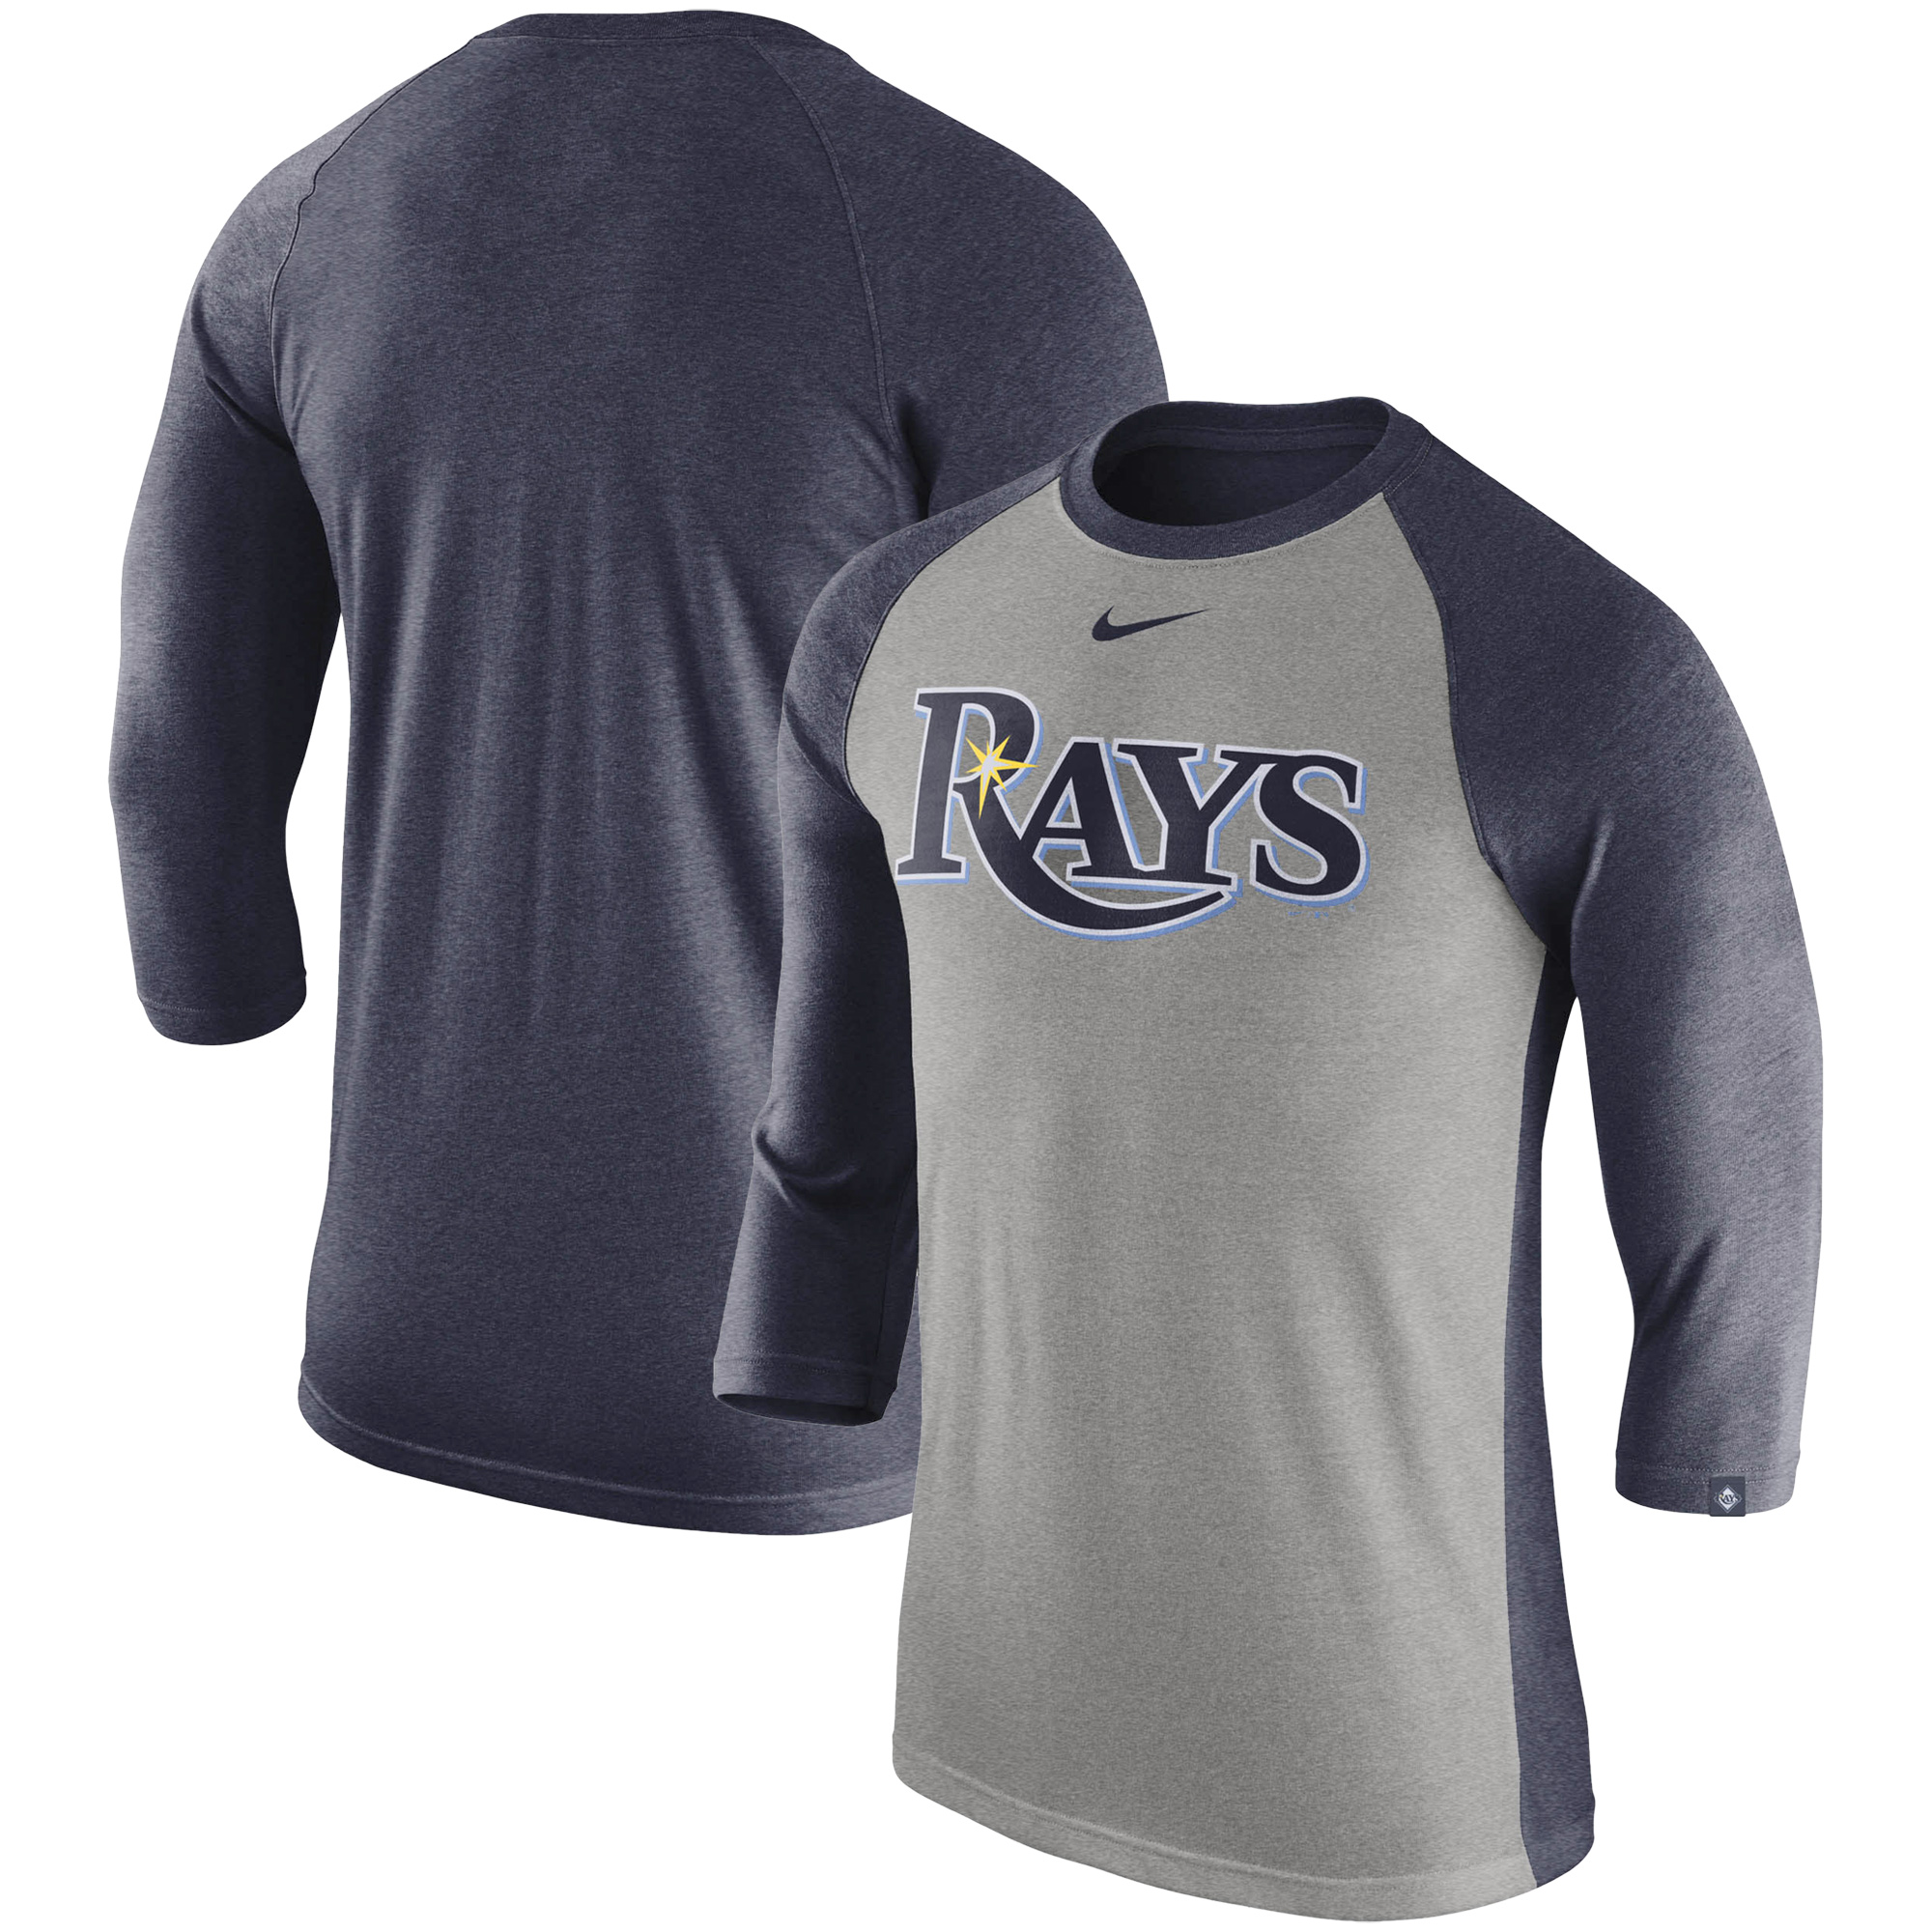 Tampa Bay Rays Nike 3/4-Sleeve Tri-Blend Raglan T-Shirt - Heathered Gray